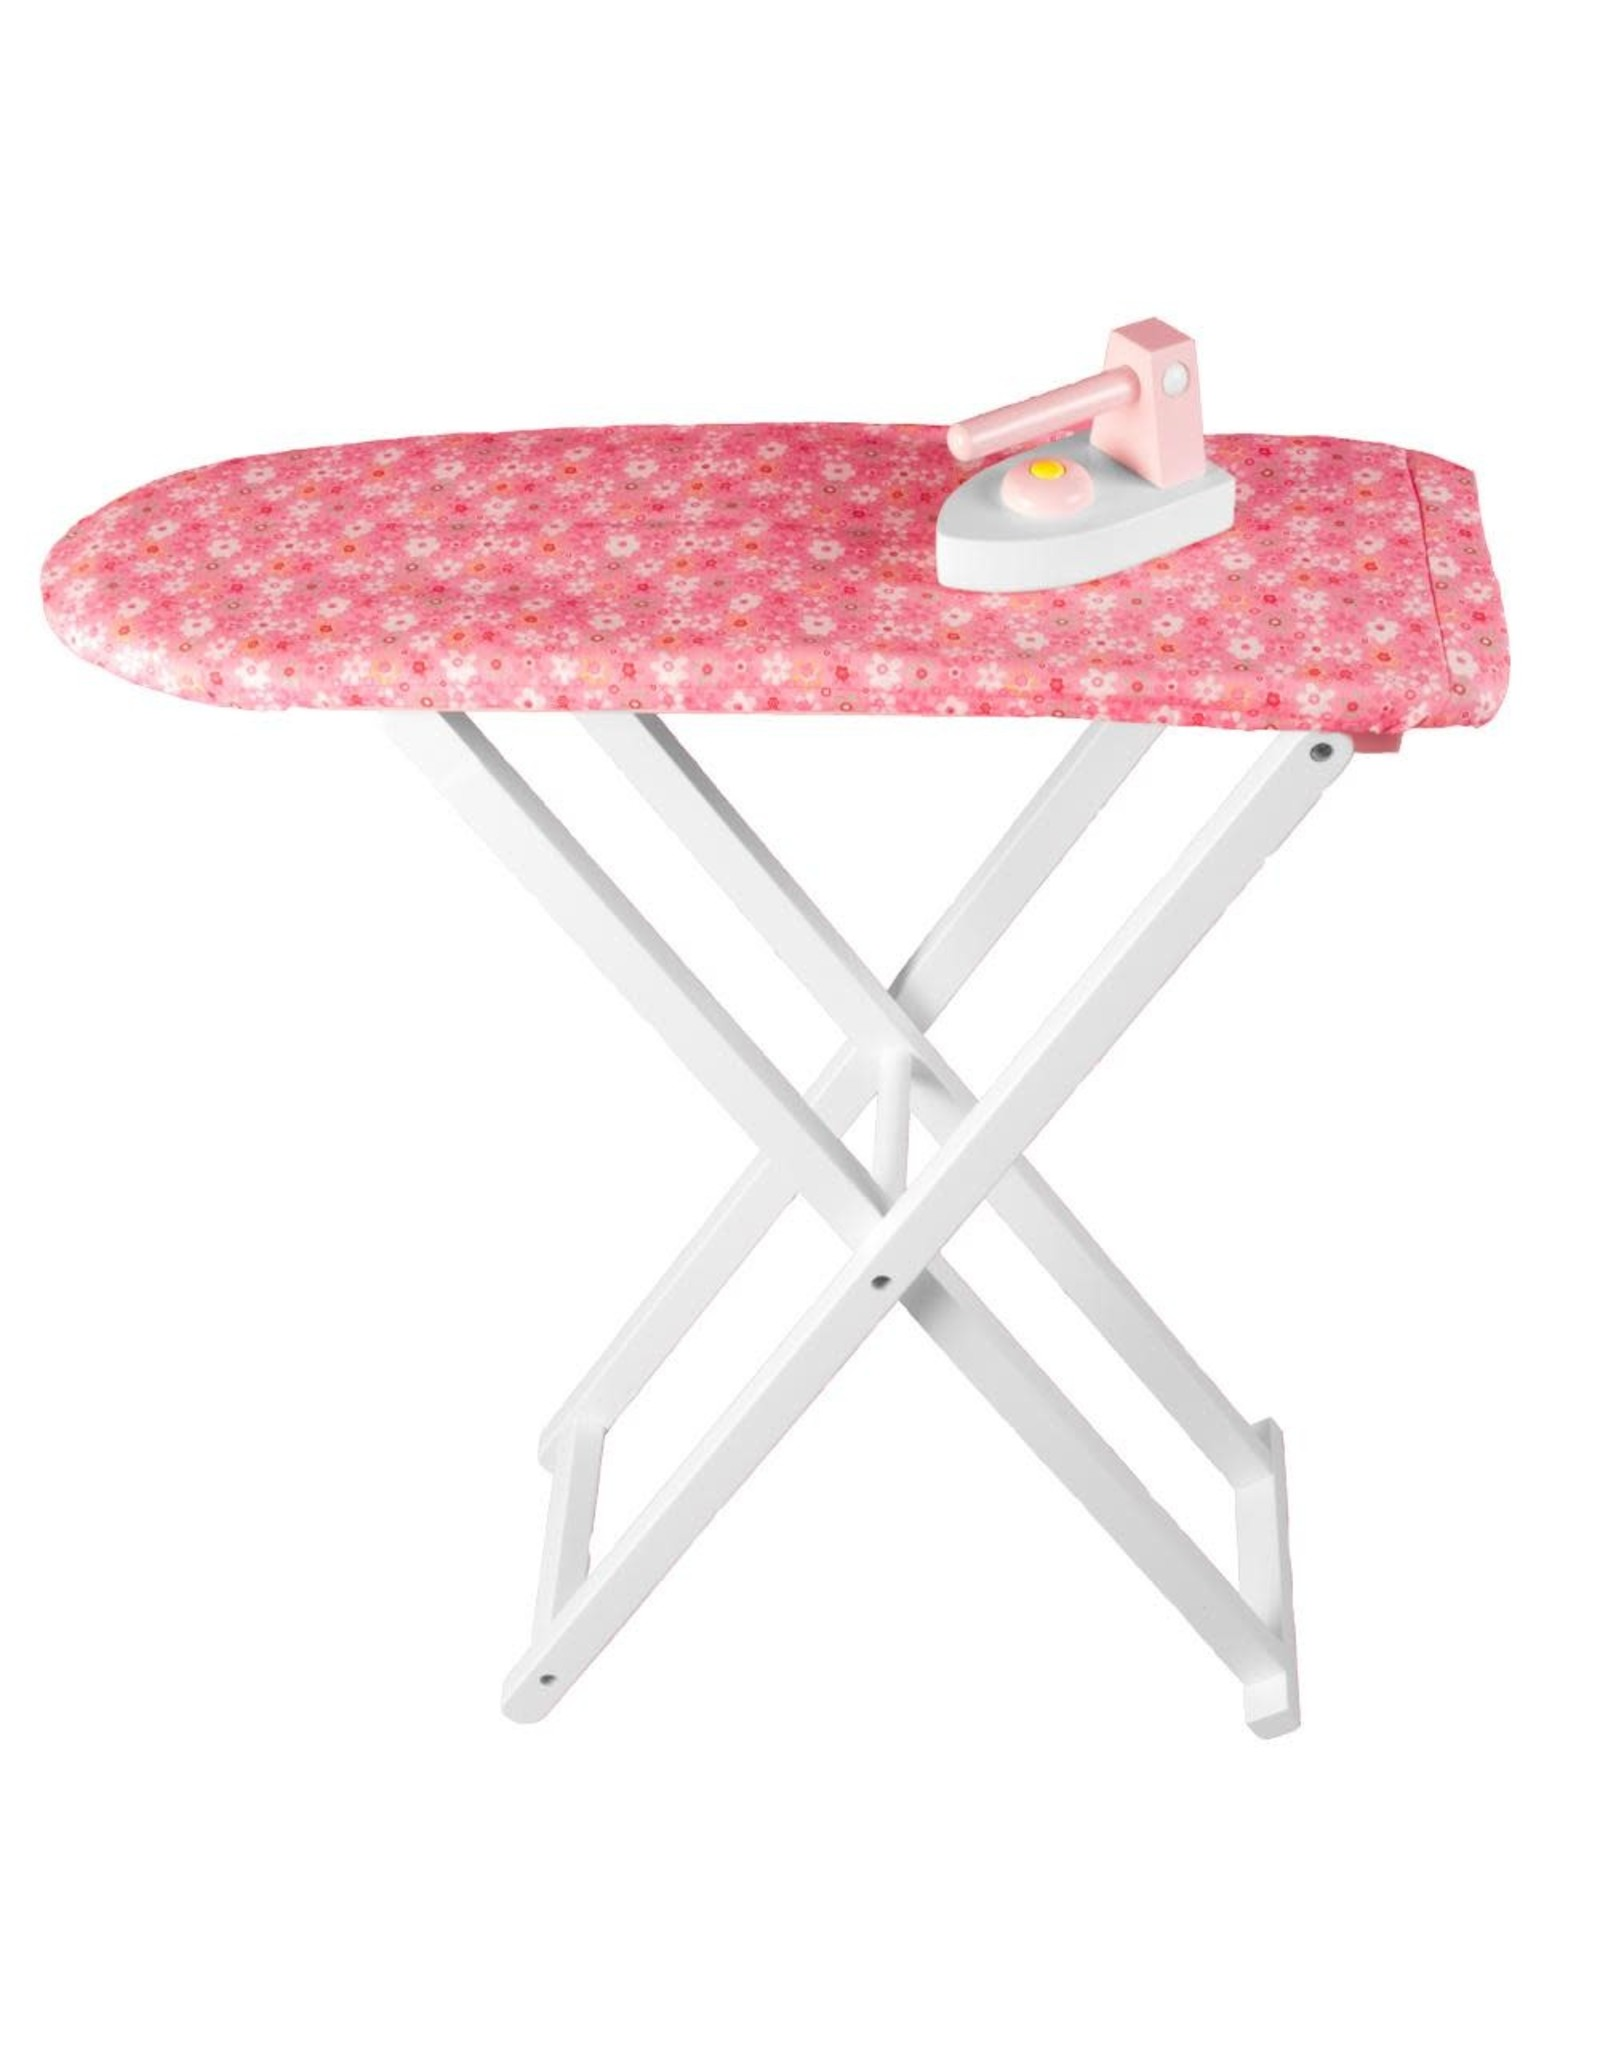 Rosalina Wooden Ironing Board & Iron